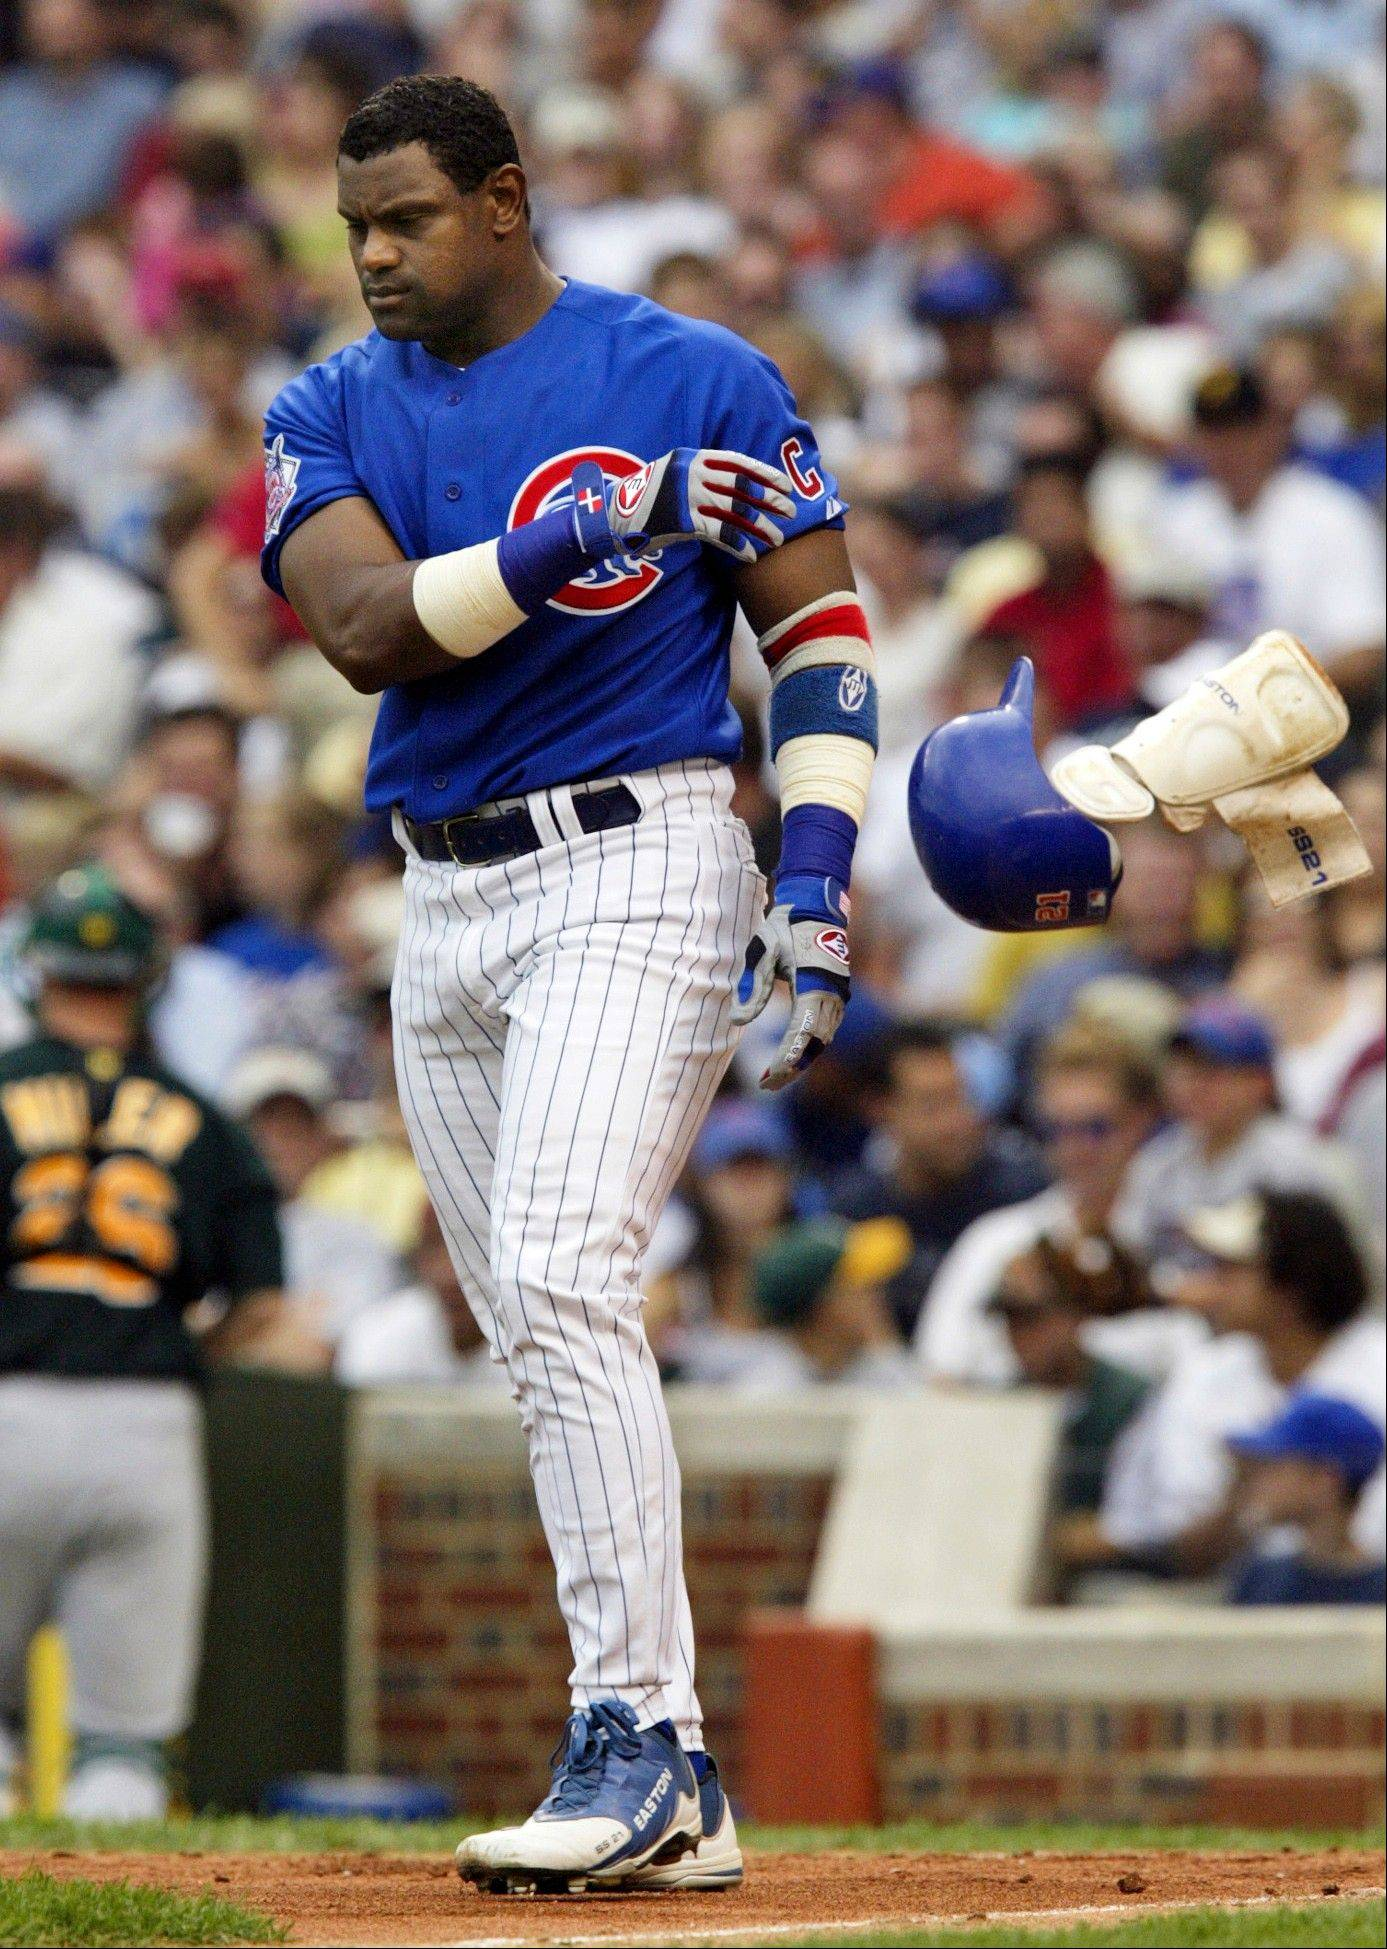 In this June 18, 2004, file photo, the Cubs' Sammy Sosa tosses his helmet and shin guard after striking out. Sosa was on only 12.5 percent of the ballots cast for this year's Hall of Fame.